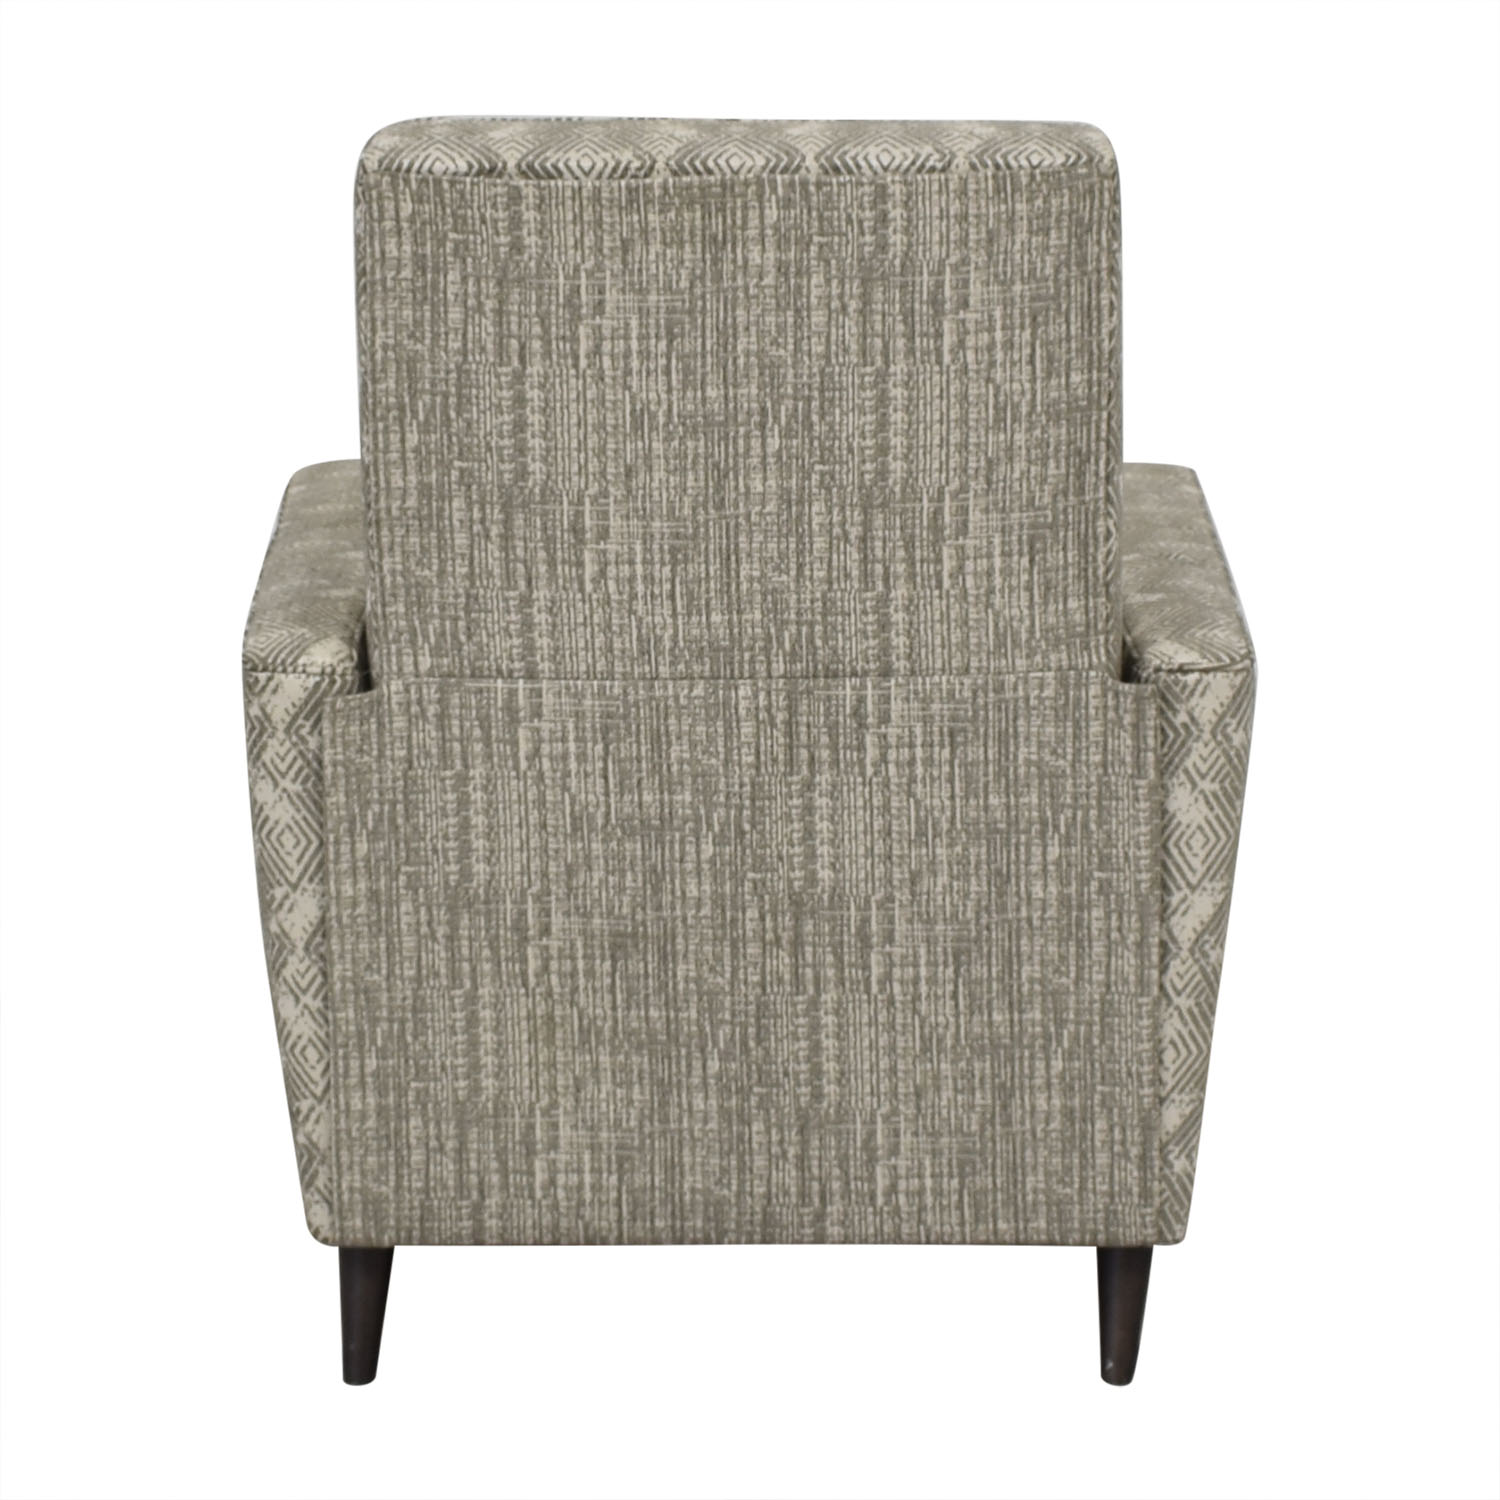 Crate & Barrel Recliner Chair / Chairs